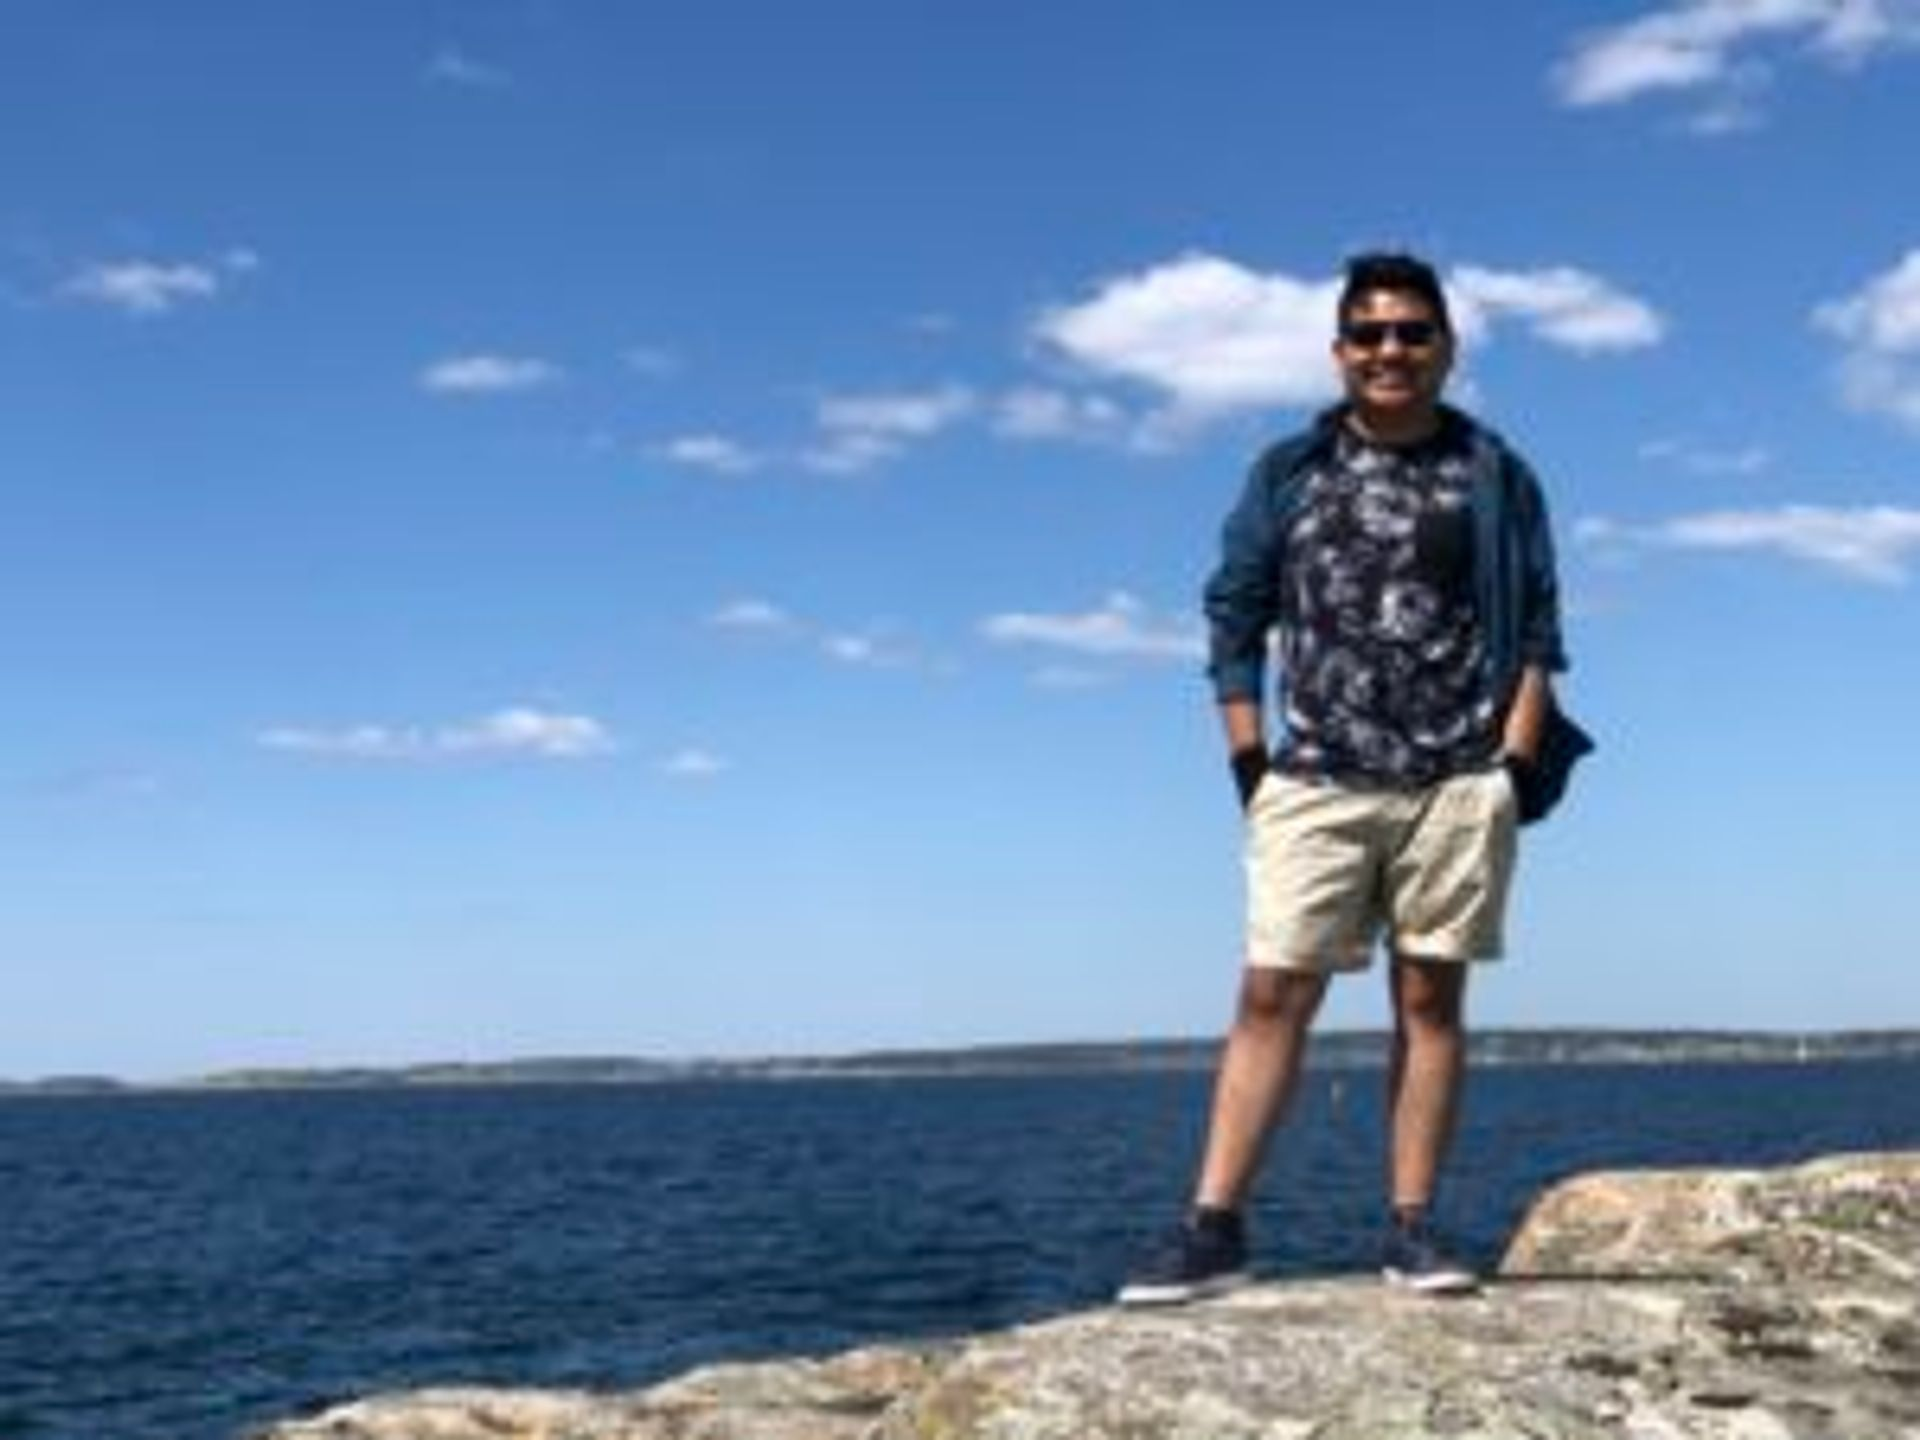 Camilo stands on a rock in front of the water.